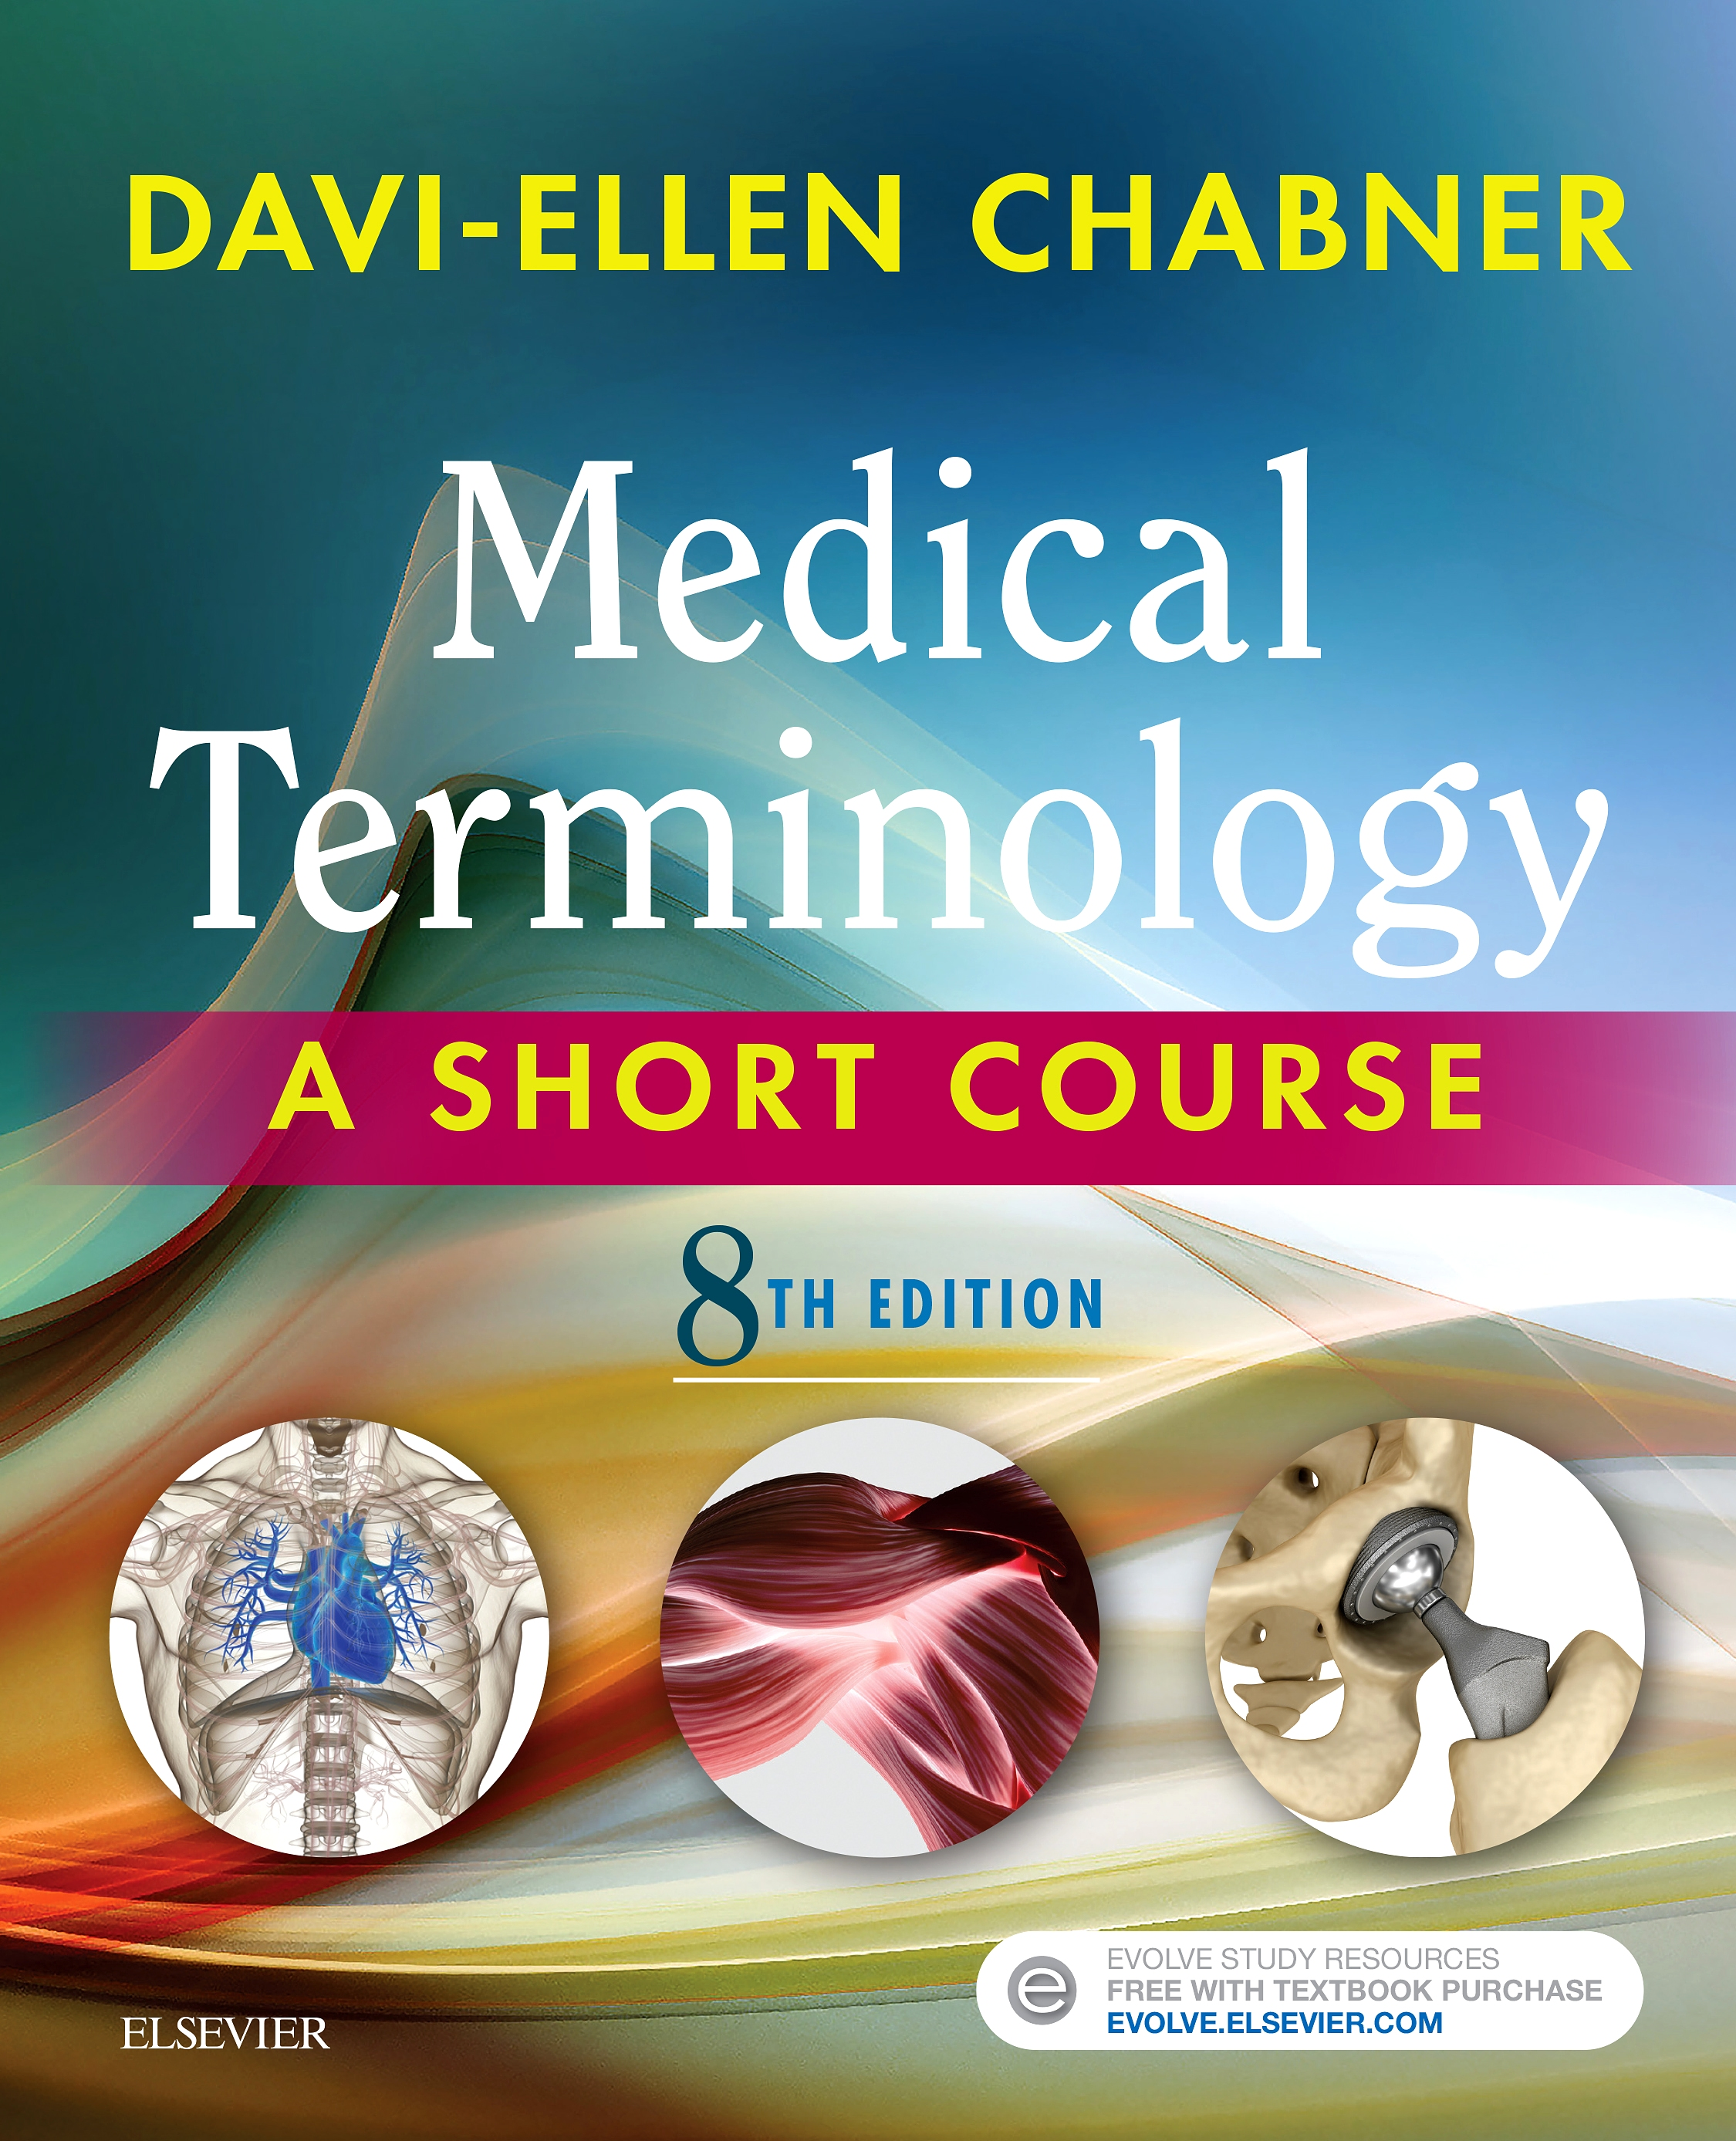 Evolve Resources for Medical Terminology: A Short Course, 8th Edition